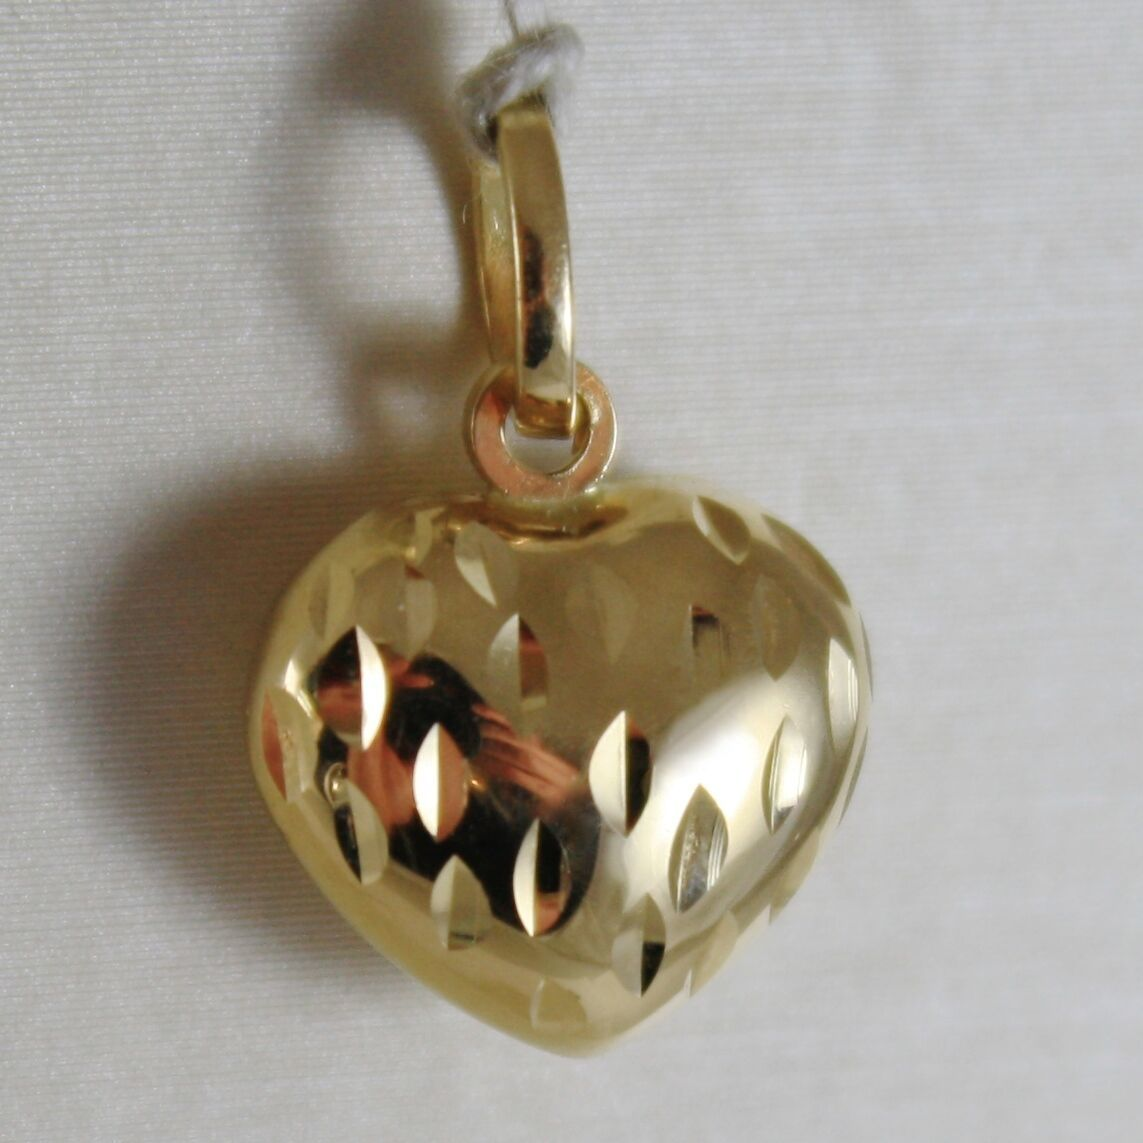 18K YELLOW GOLD ROUNDED MINI HEART CHARM PENDANT FINELY HAMMERED MADE IN ITALY